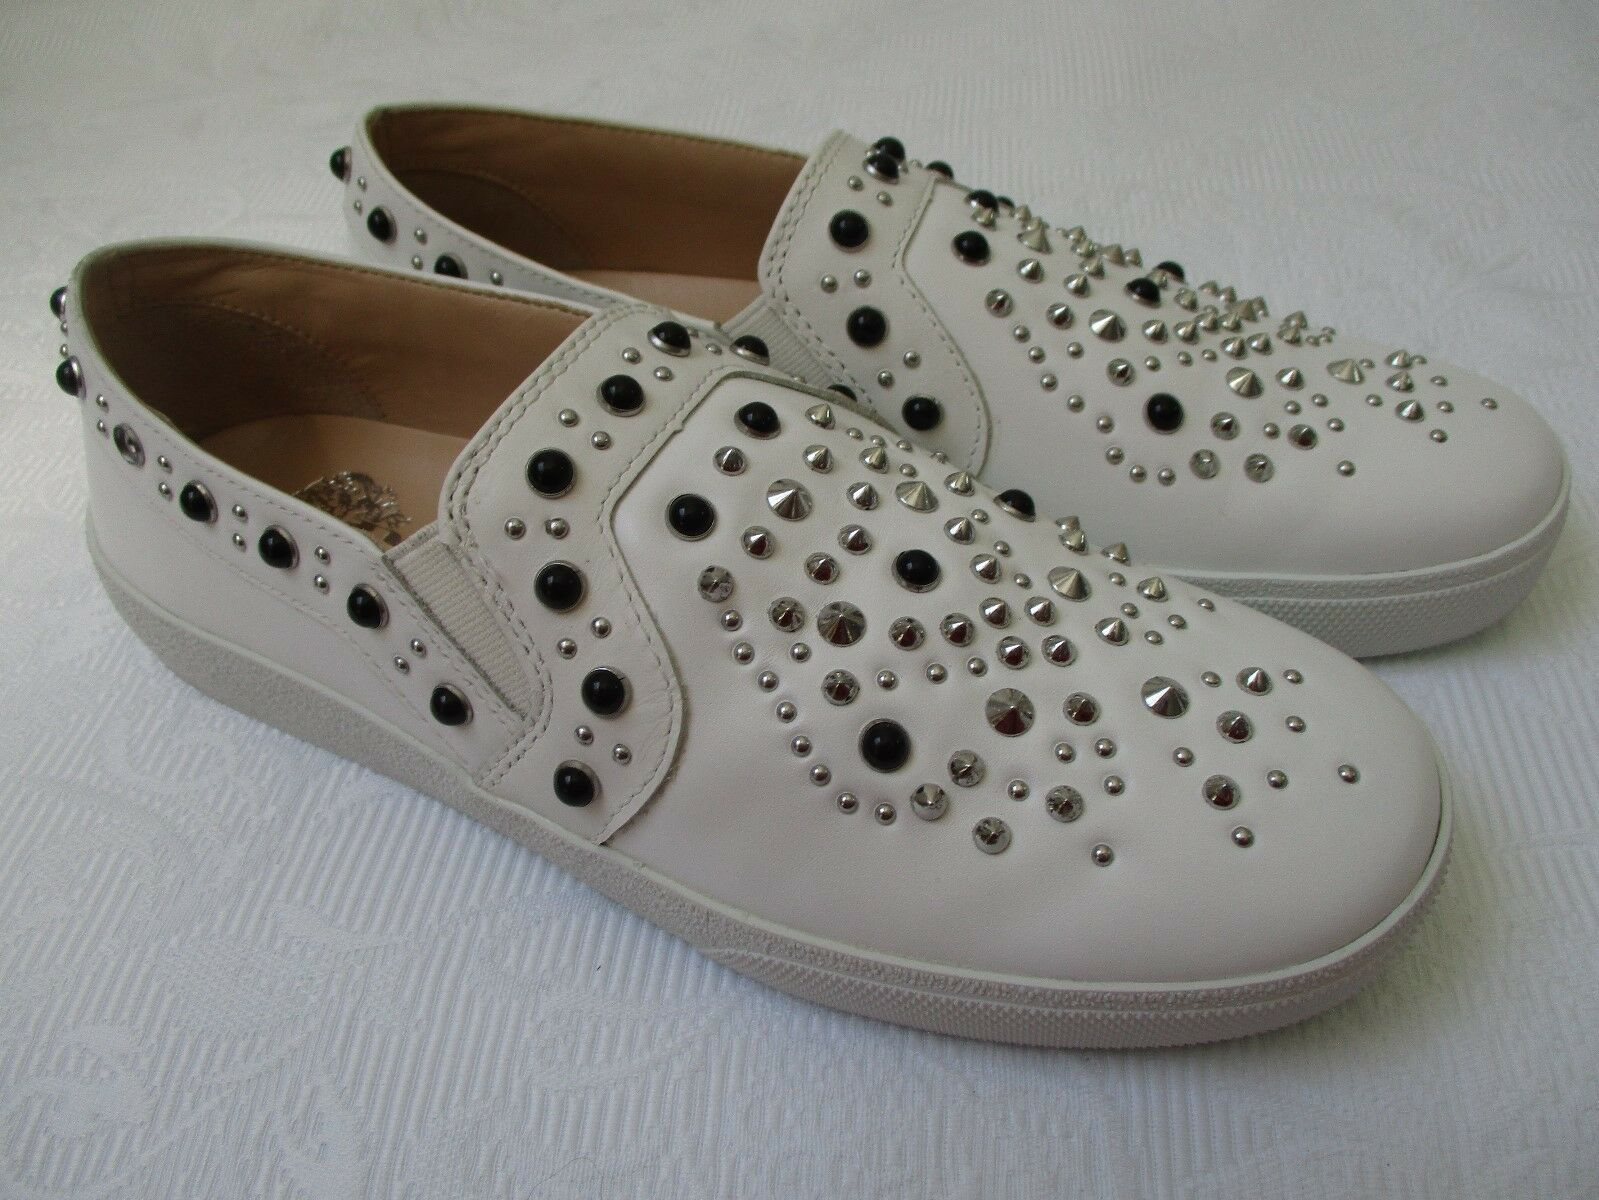 VINCE CAMUTO CASINTIA MILK NEW CENTURY STUDDED LEATHER M Schuhe SIZE 7 1/2 M LEATHER - NEW 79f232